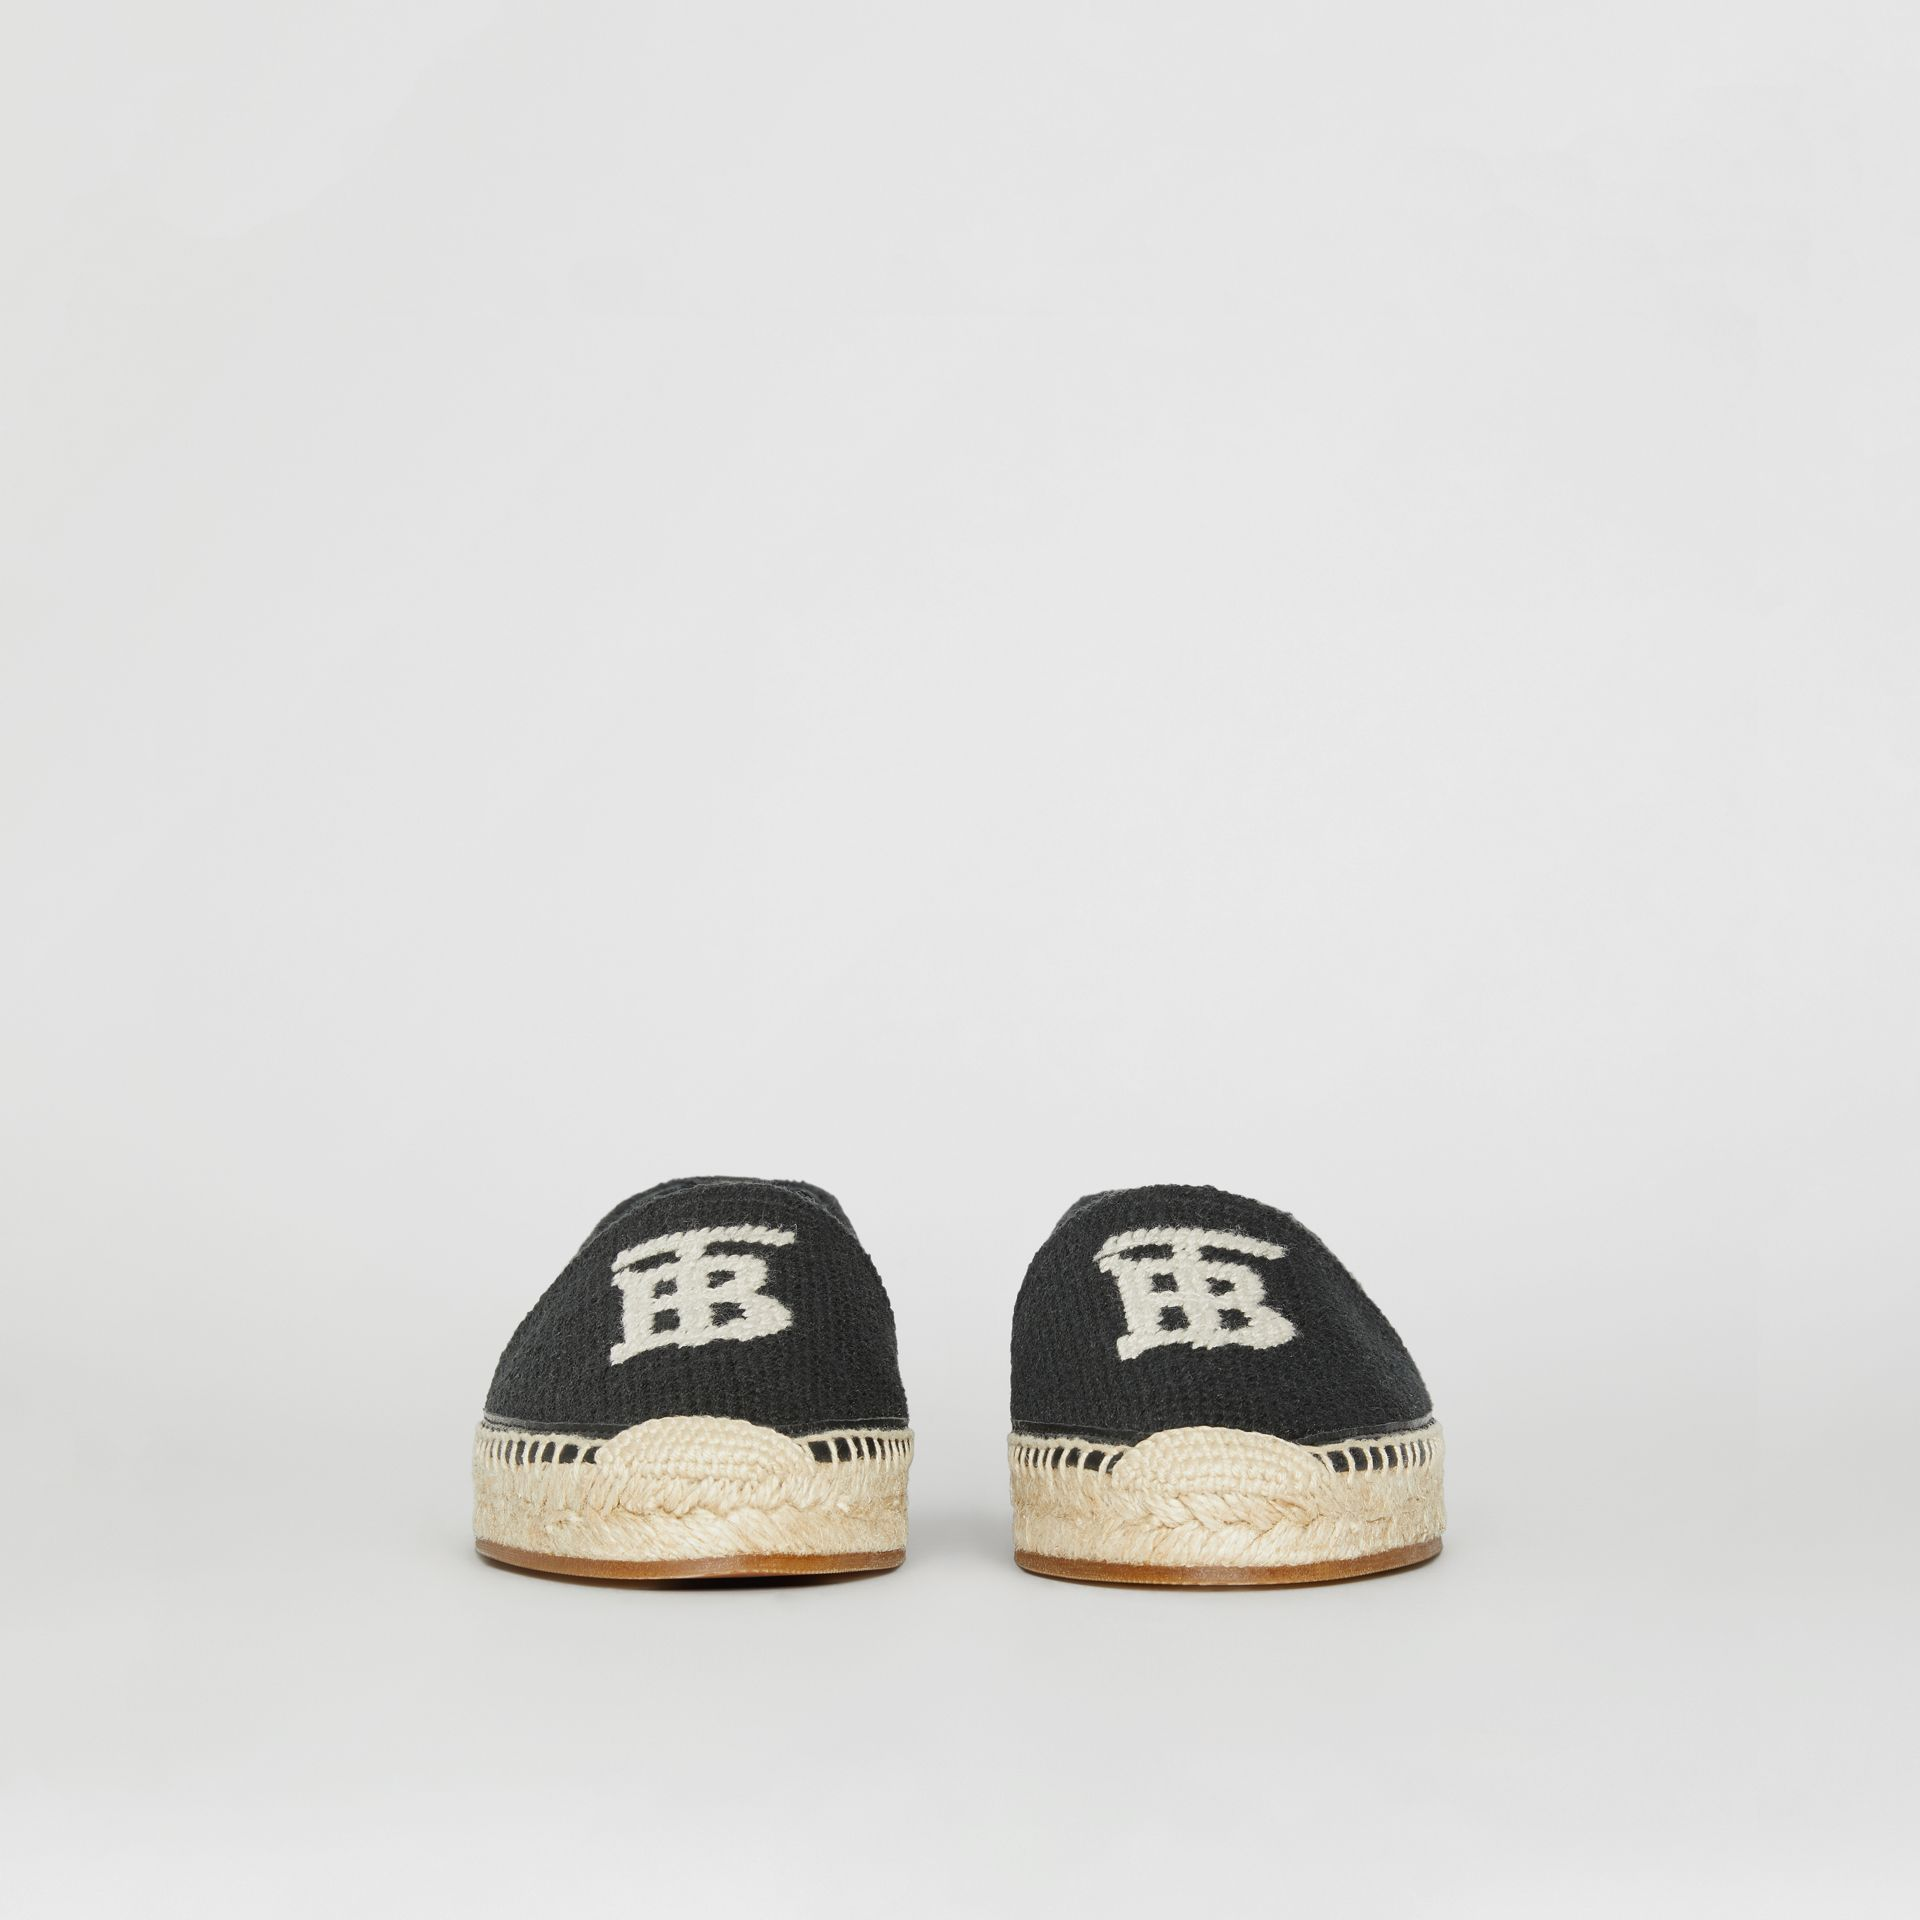 Monogram Motif Cotton and Leather Espadrilles in Black/ecru - Women | Burberry United Kingdom - gallery image 3